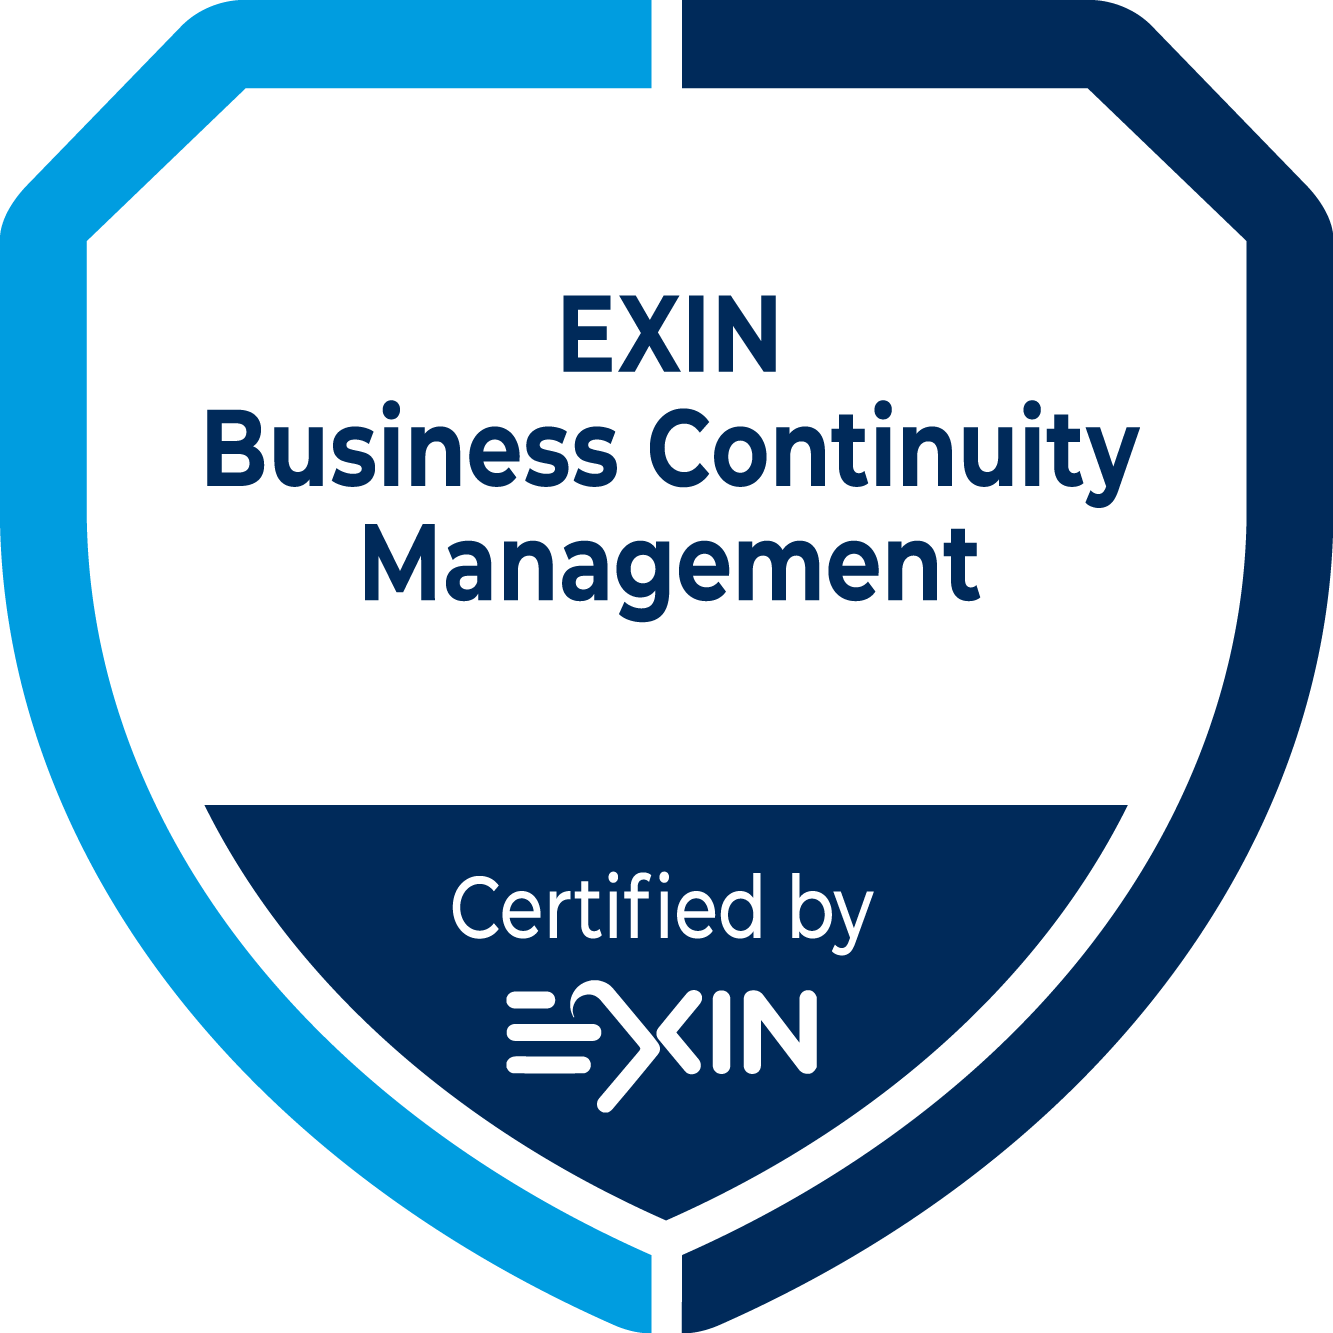 EXIN Business Continuity Management